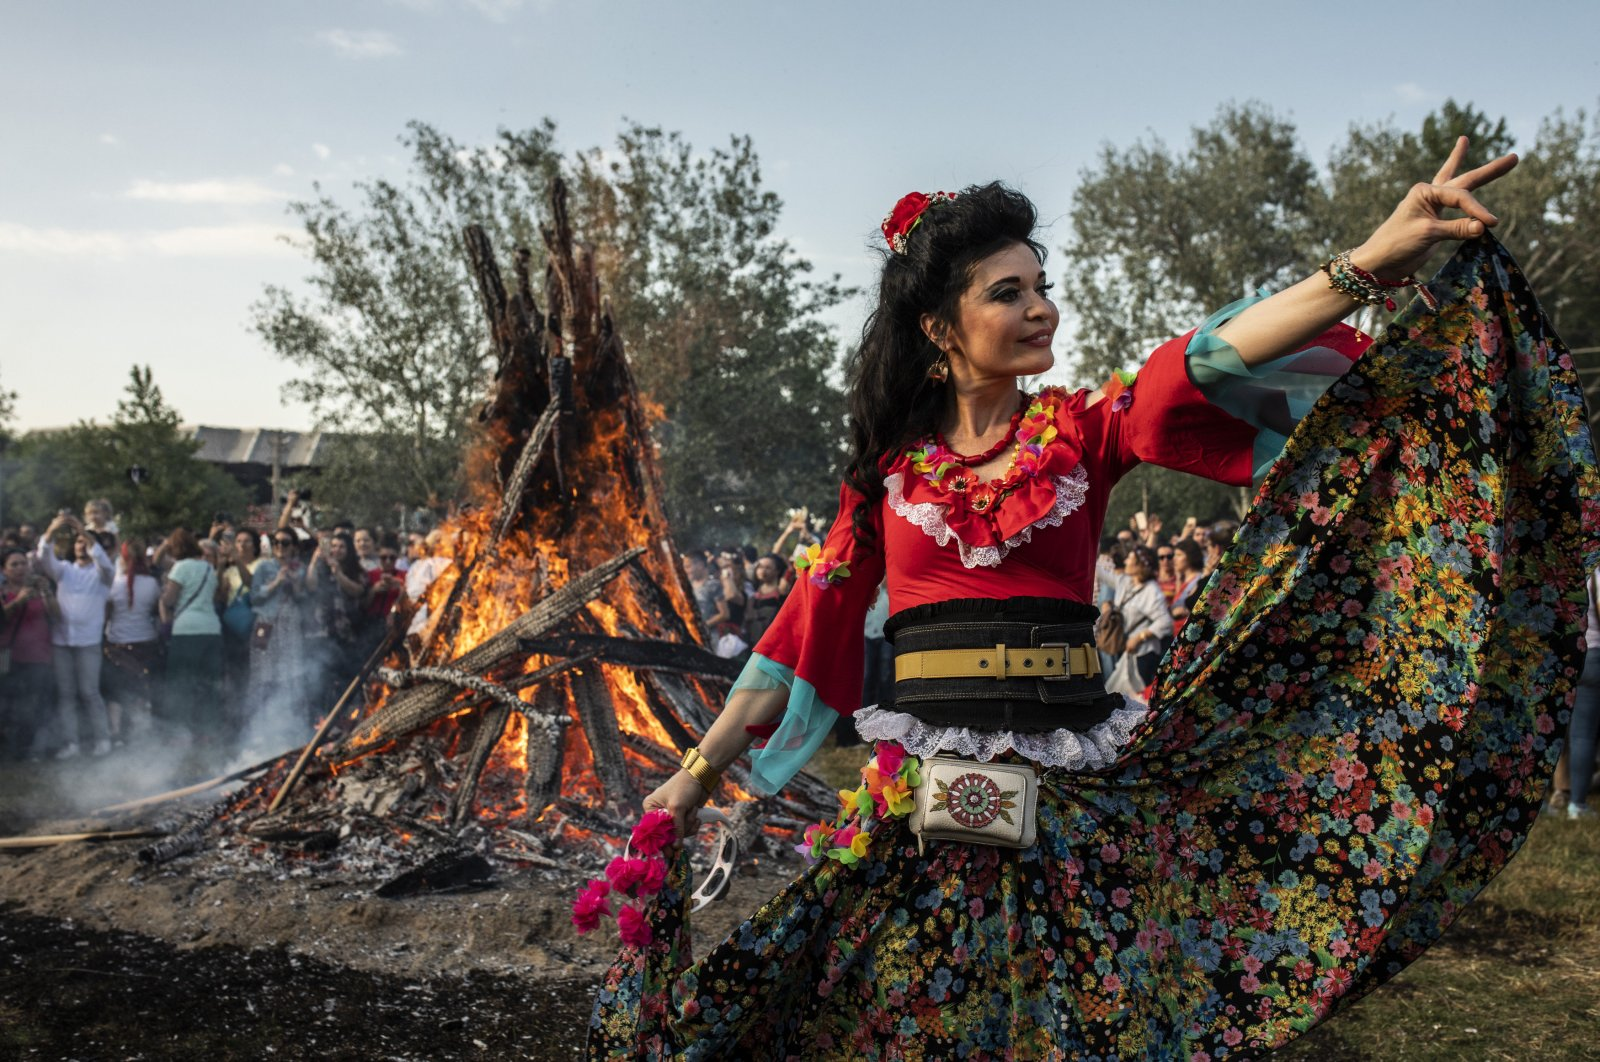 In this undated photo, a woman in traditional attire dances during the Kakava (Hıdırellez) celebrations in the border province of Edirne. (DHA Photo)